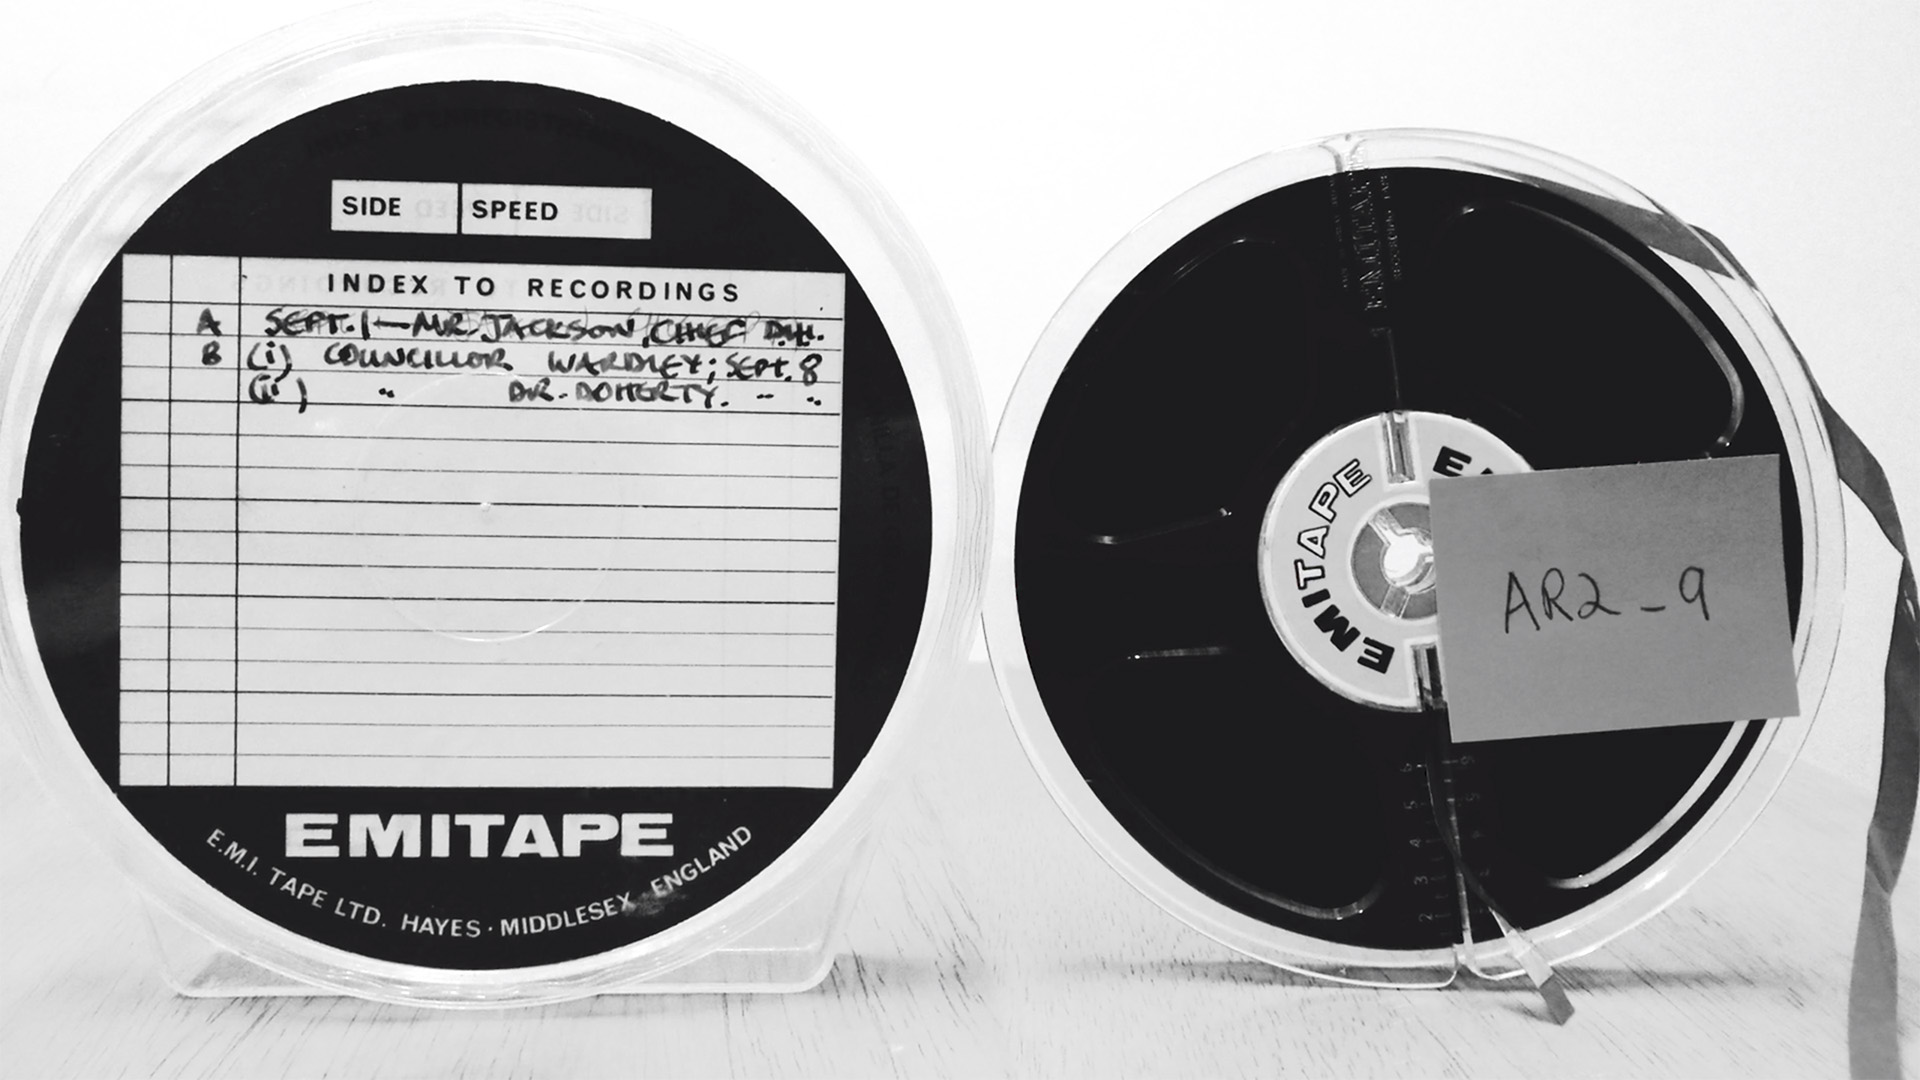 Two reel-to-reel cassettes with labels indicating they are from an archive, black and white